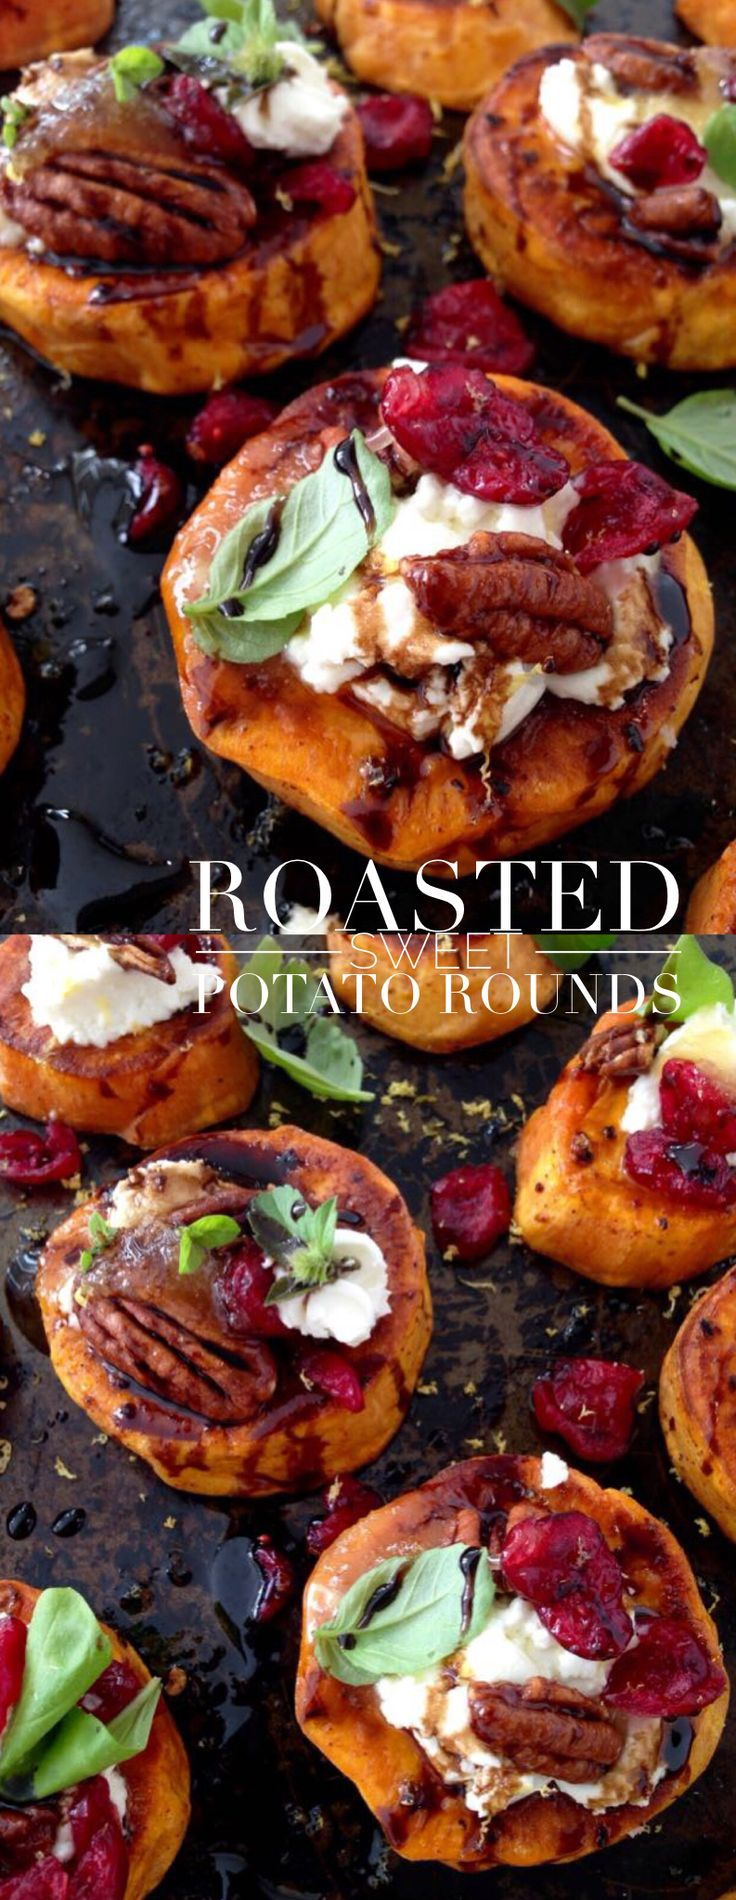 Roasted Sweet Potato Rounds with Goat Cheese  Cranberries and Balsamic Glaze   CiaoFlorentina com